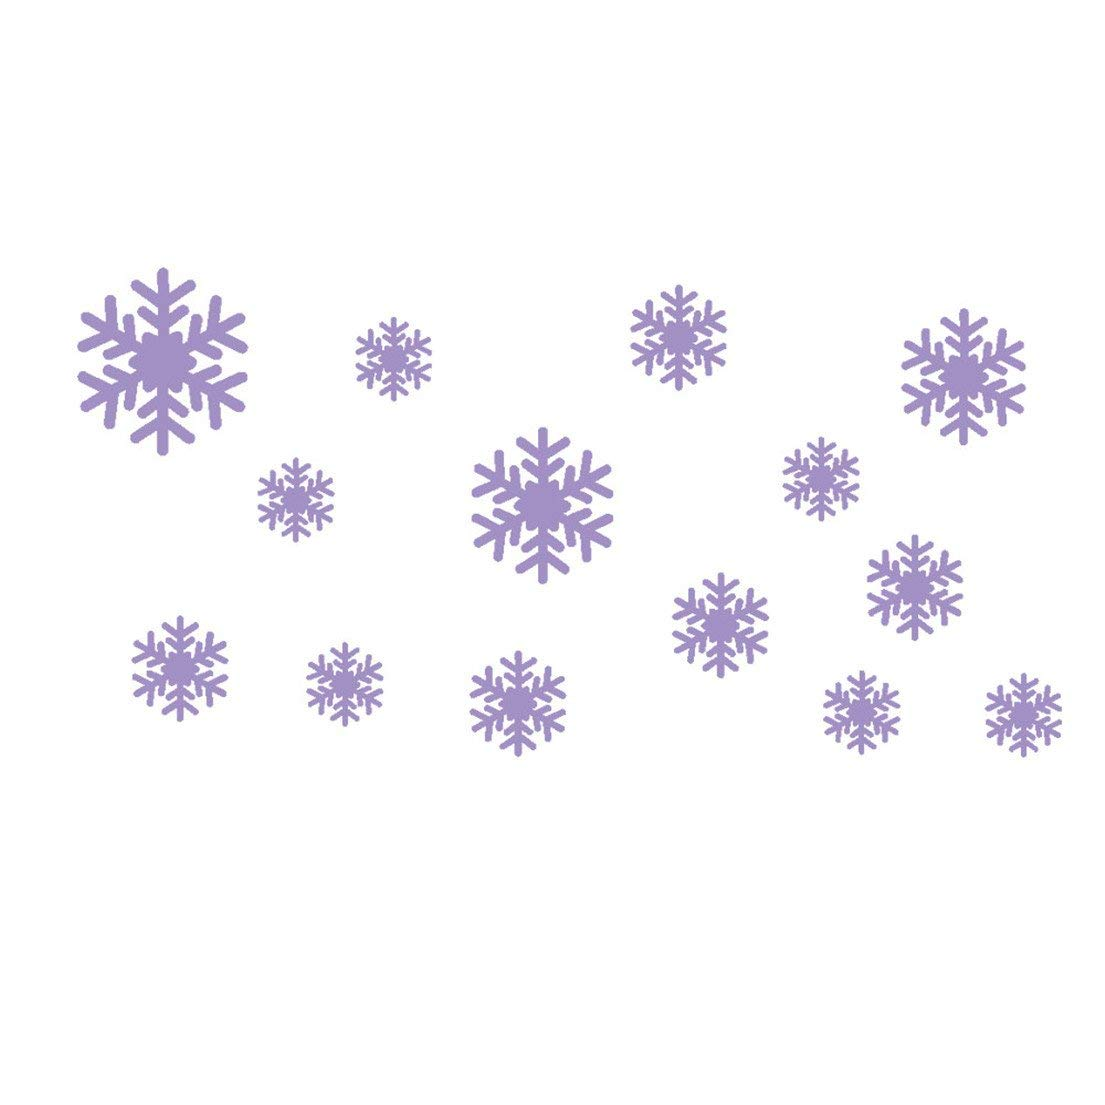 Ussore Wall Sticker Frozen Snow Flakes Vinyl Art Wall Quote Decal Sticker Removable For Kids Home Living Room House Bedroom Bathroom Kitchen Office Home Decoration (purple)